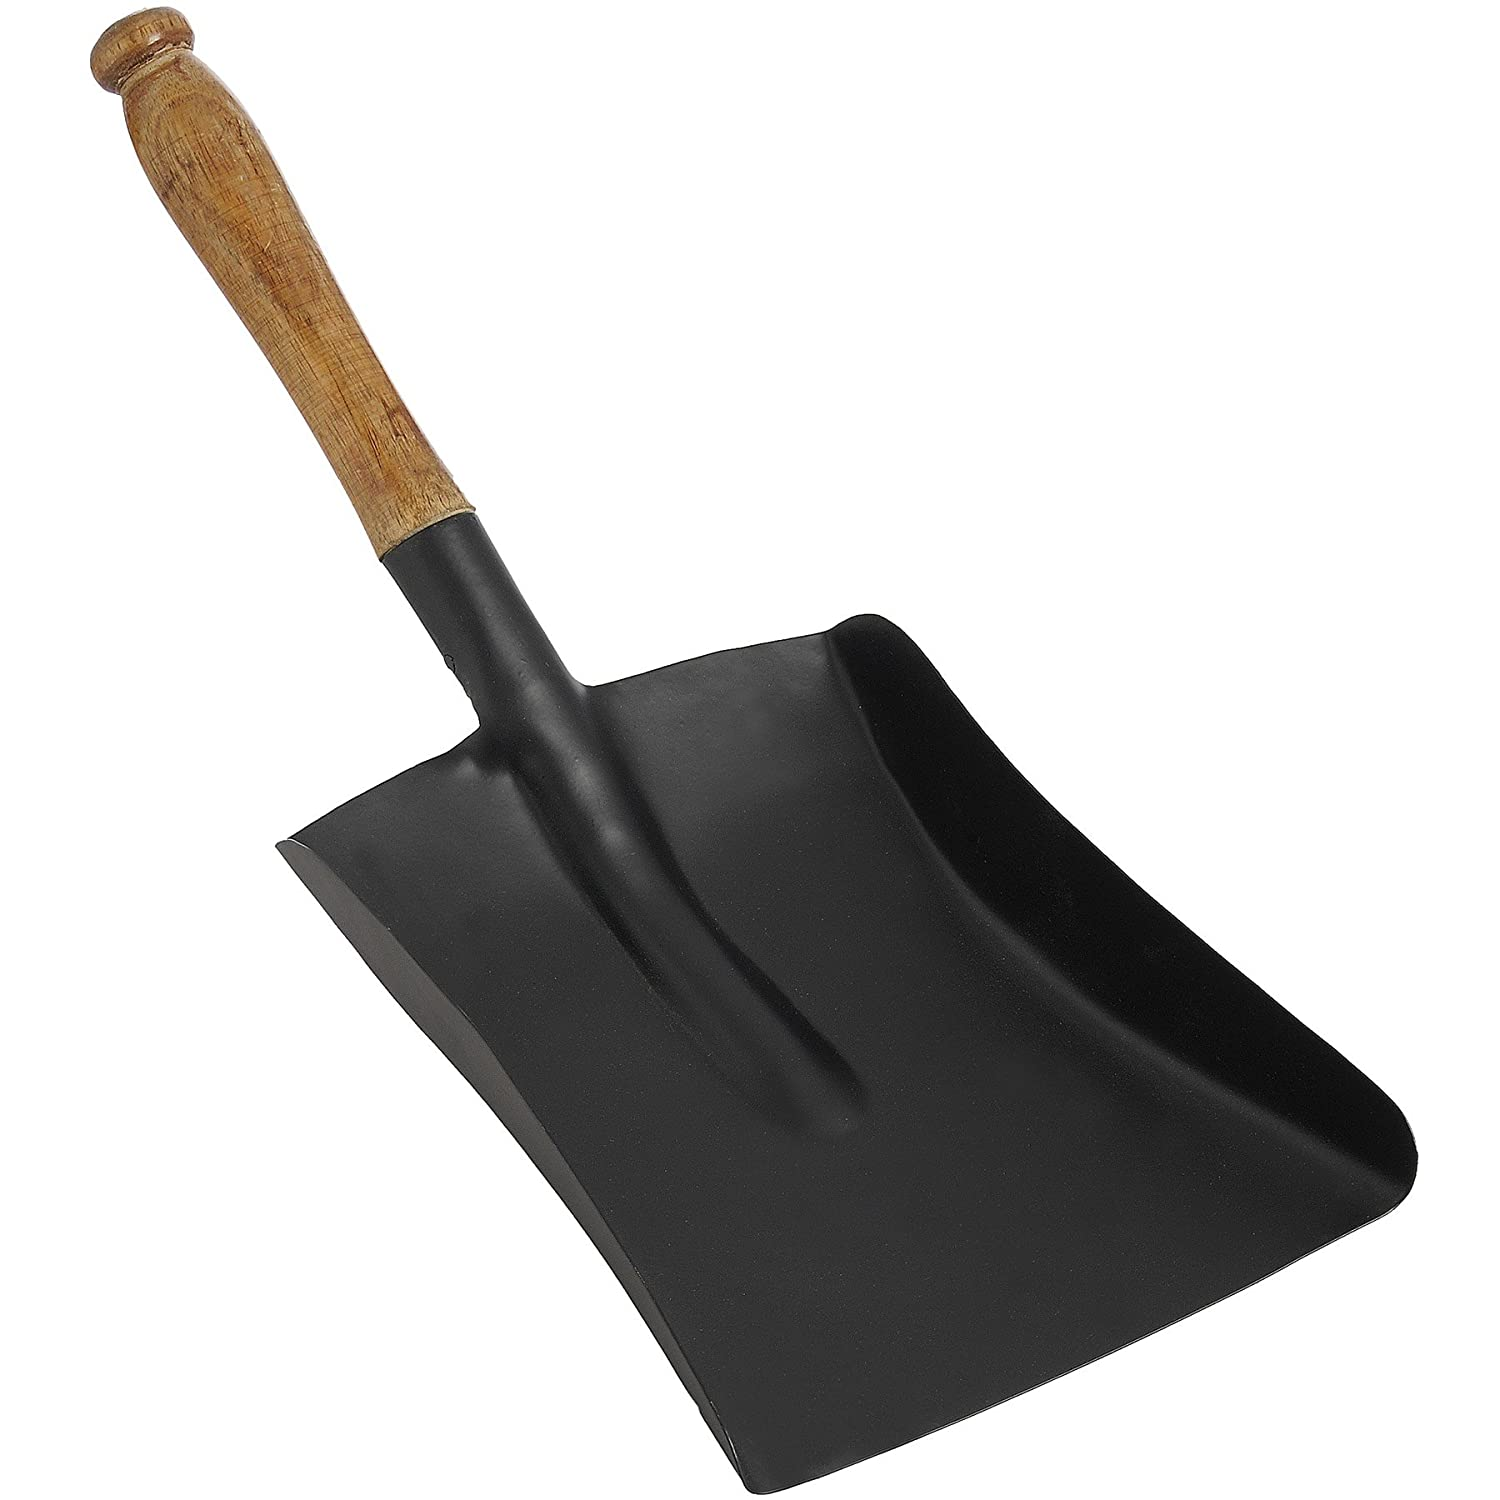 Hill Interiors Steel Shovel with Wooden Handle (One Size) (Black) UTHI864_1